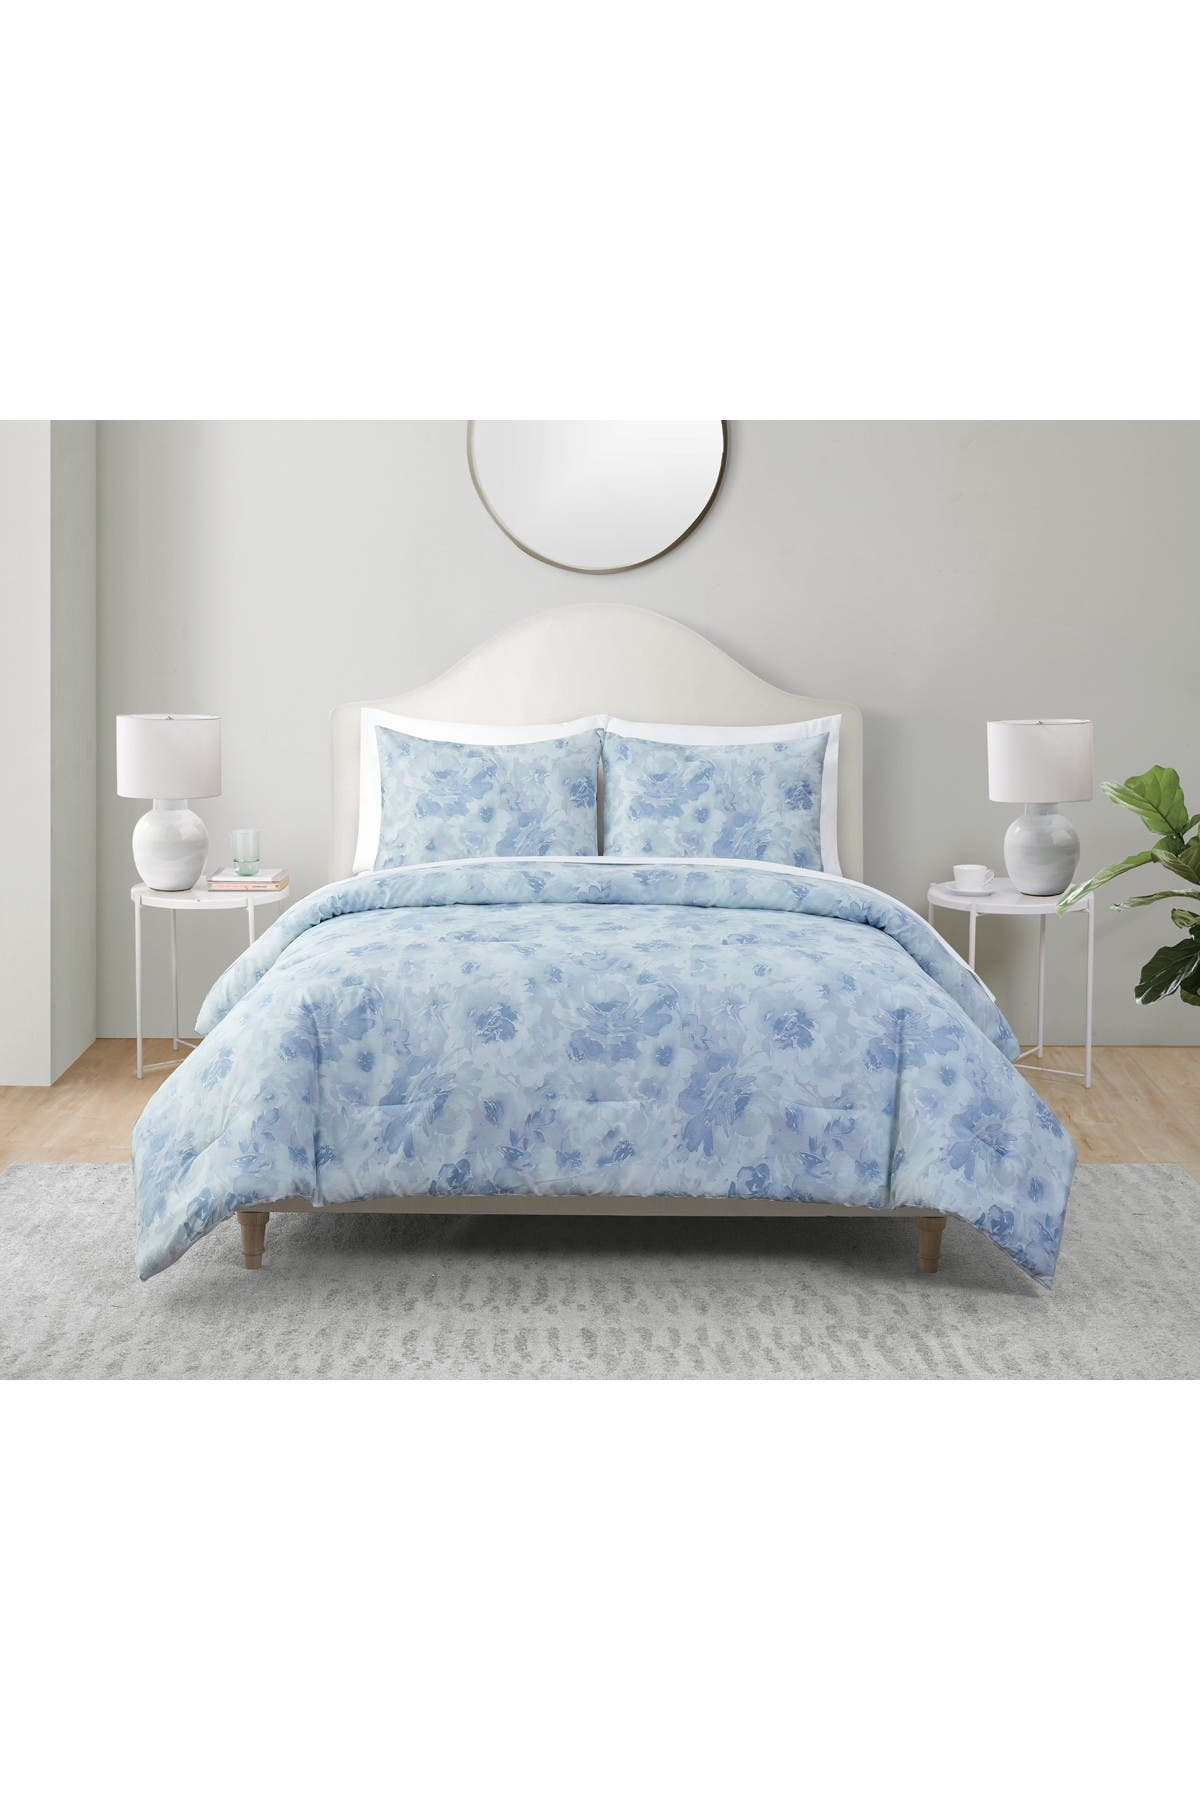 Image of VCNY HOME Tahari Bayberry 3 Piece Comforter Set - Blue - Full/Queen